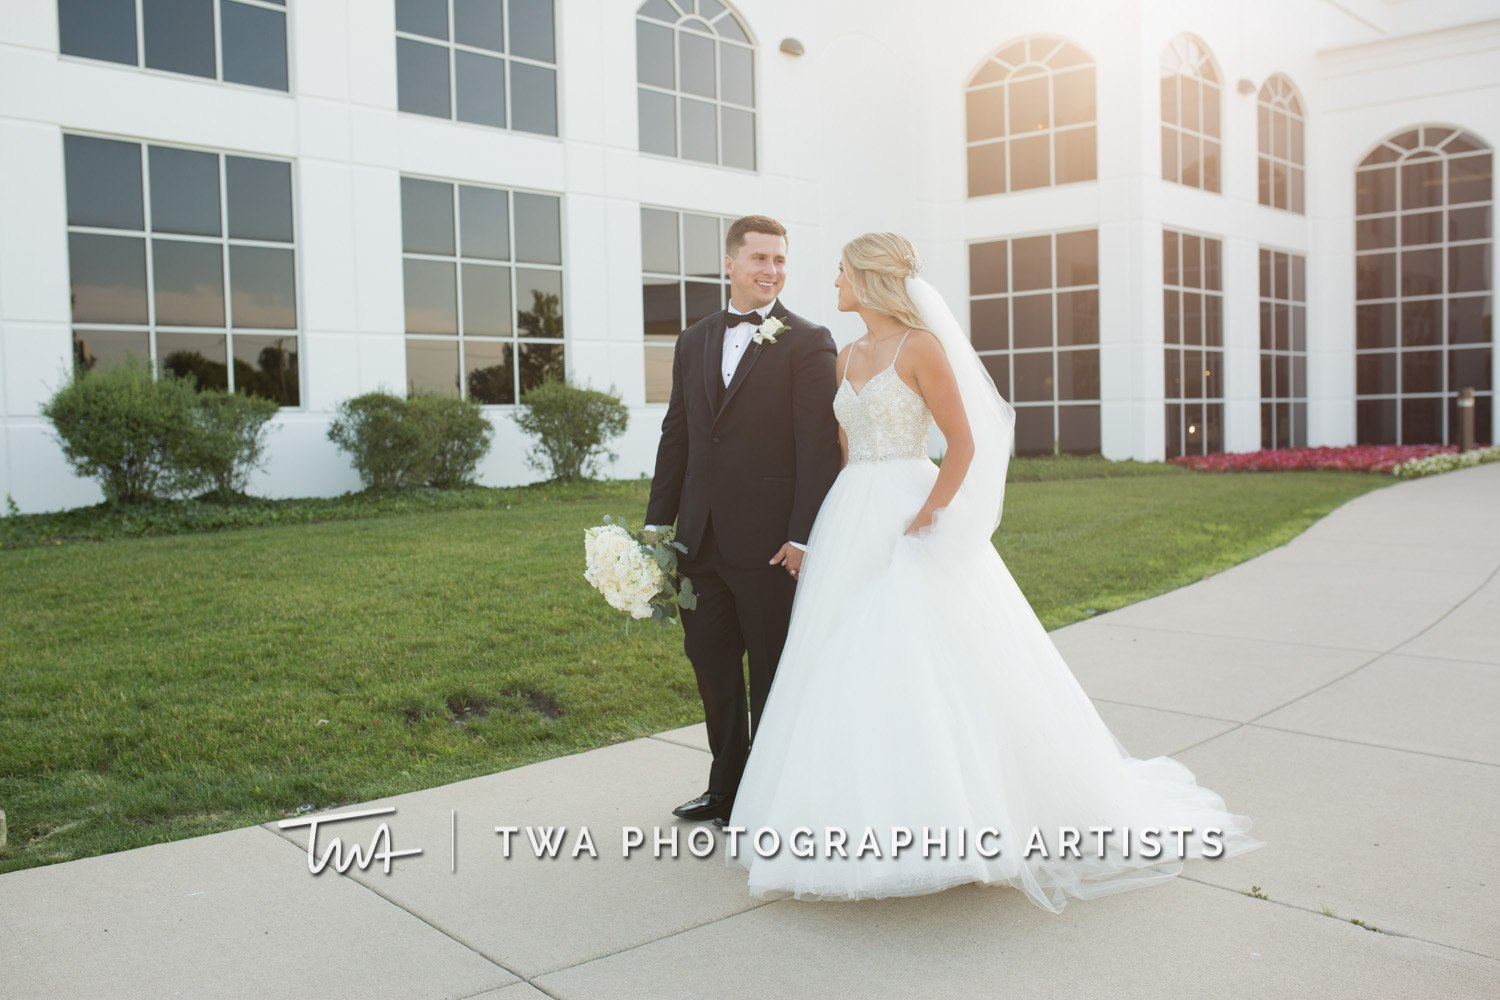 Chicago-Wedding-Photographer-TWA-Photographic-Artists-DiNolfo_s-Banquets_Augustine_Evans_MJ_WK-0952